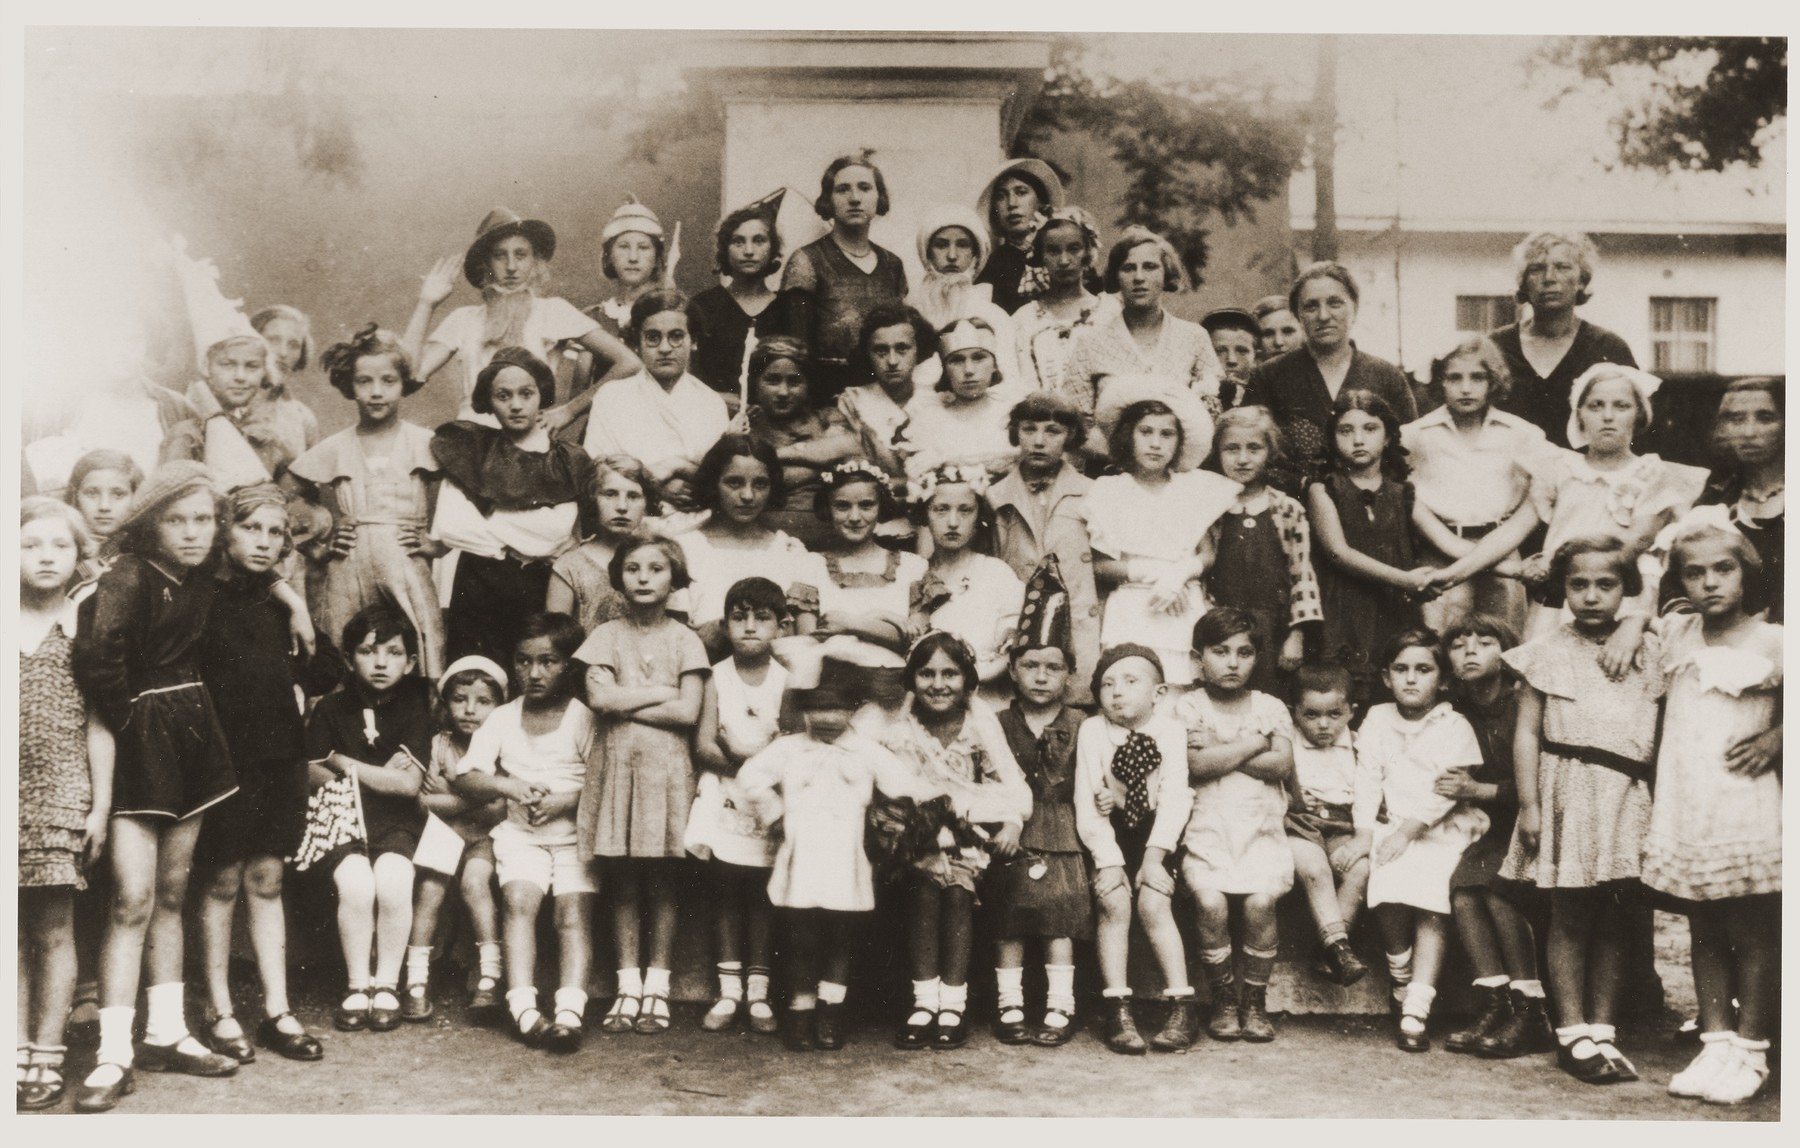 Group portrait of students in the Sadagura Beit Yaakov school dressed up in costumes to represent different Jewish holidays.  Included in the photo are Berta Weisberger (Purim), Heniu Reich (Sukkot), Schlioma Weisbach, Moli Korner (Yom Kippur), Fritzi Bender (Sabbath), Clara Lehr Kreisler, Sima Kerner, Paula Deresch Brunstein (Shavuot), Koko Kinsbruner Laor and Rabbi Landau's two children.